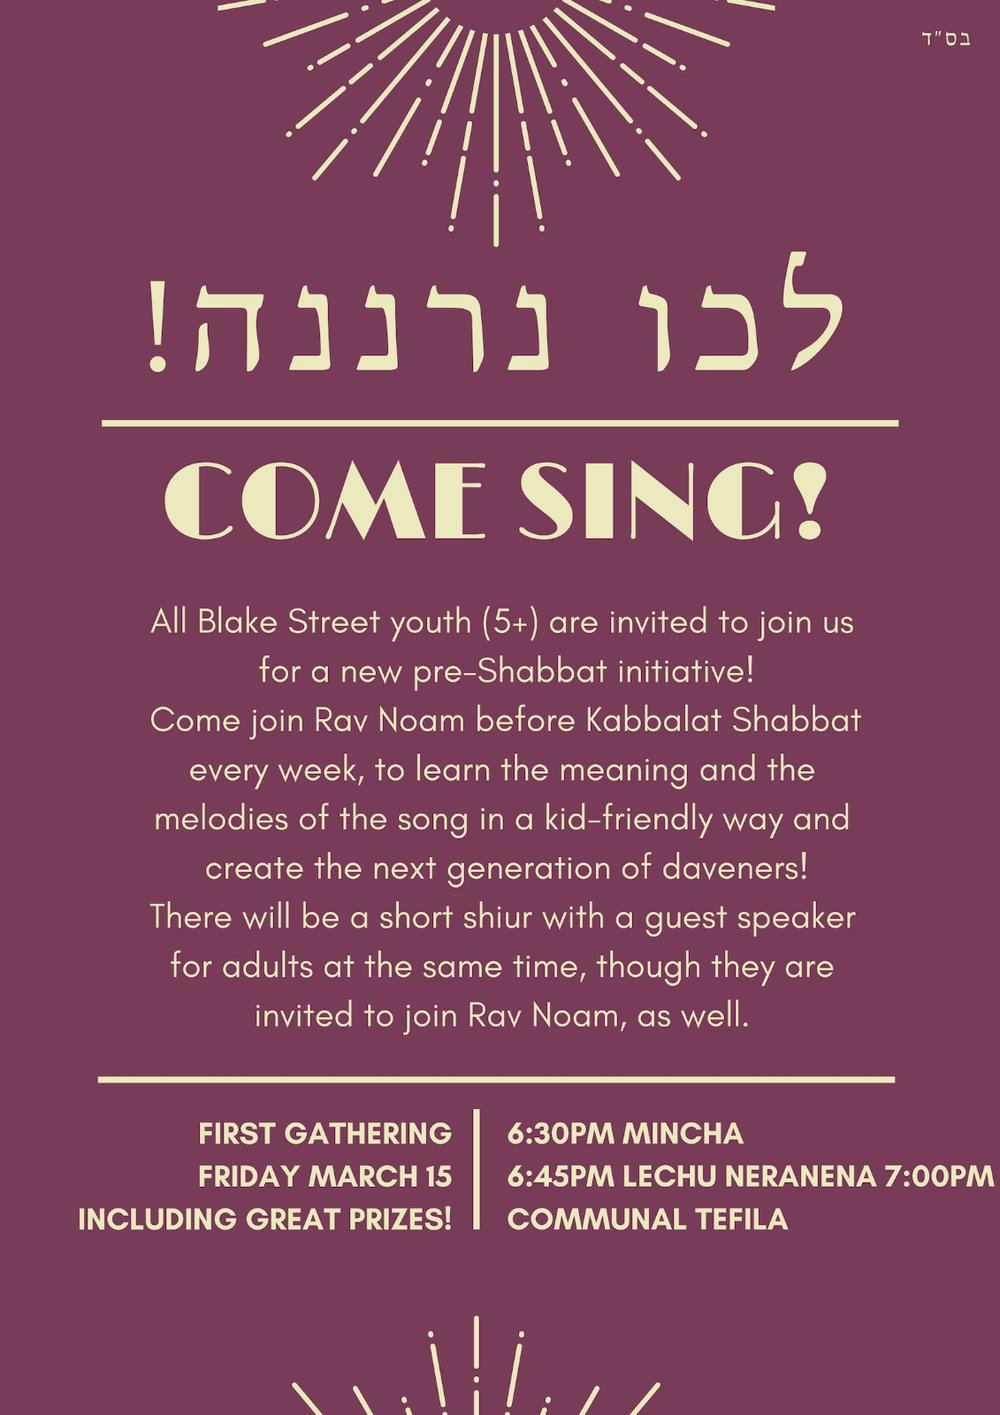 Come Sing! - Join us for Lechu Neranena every Friday night.